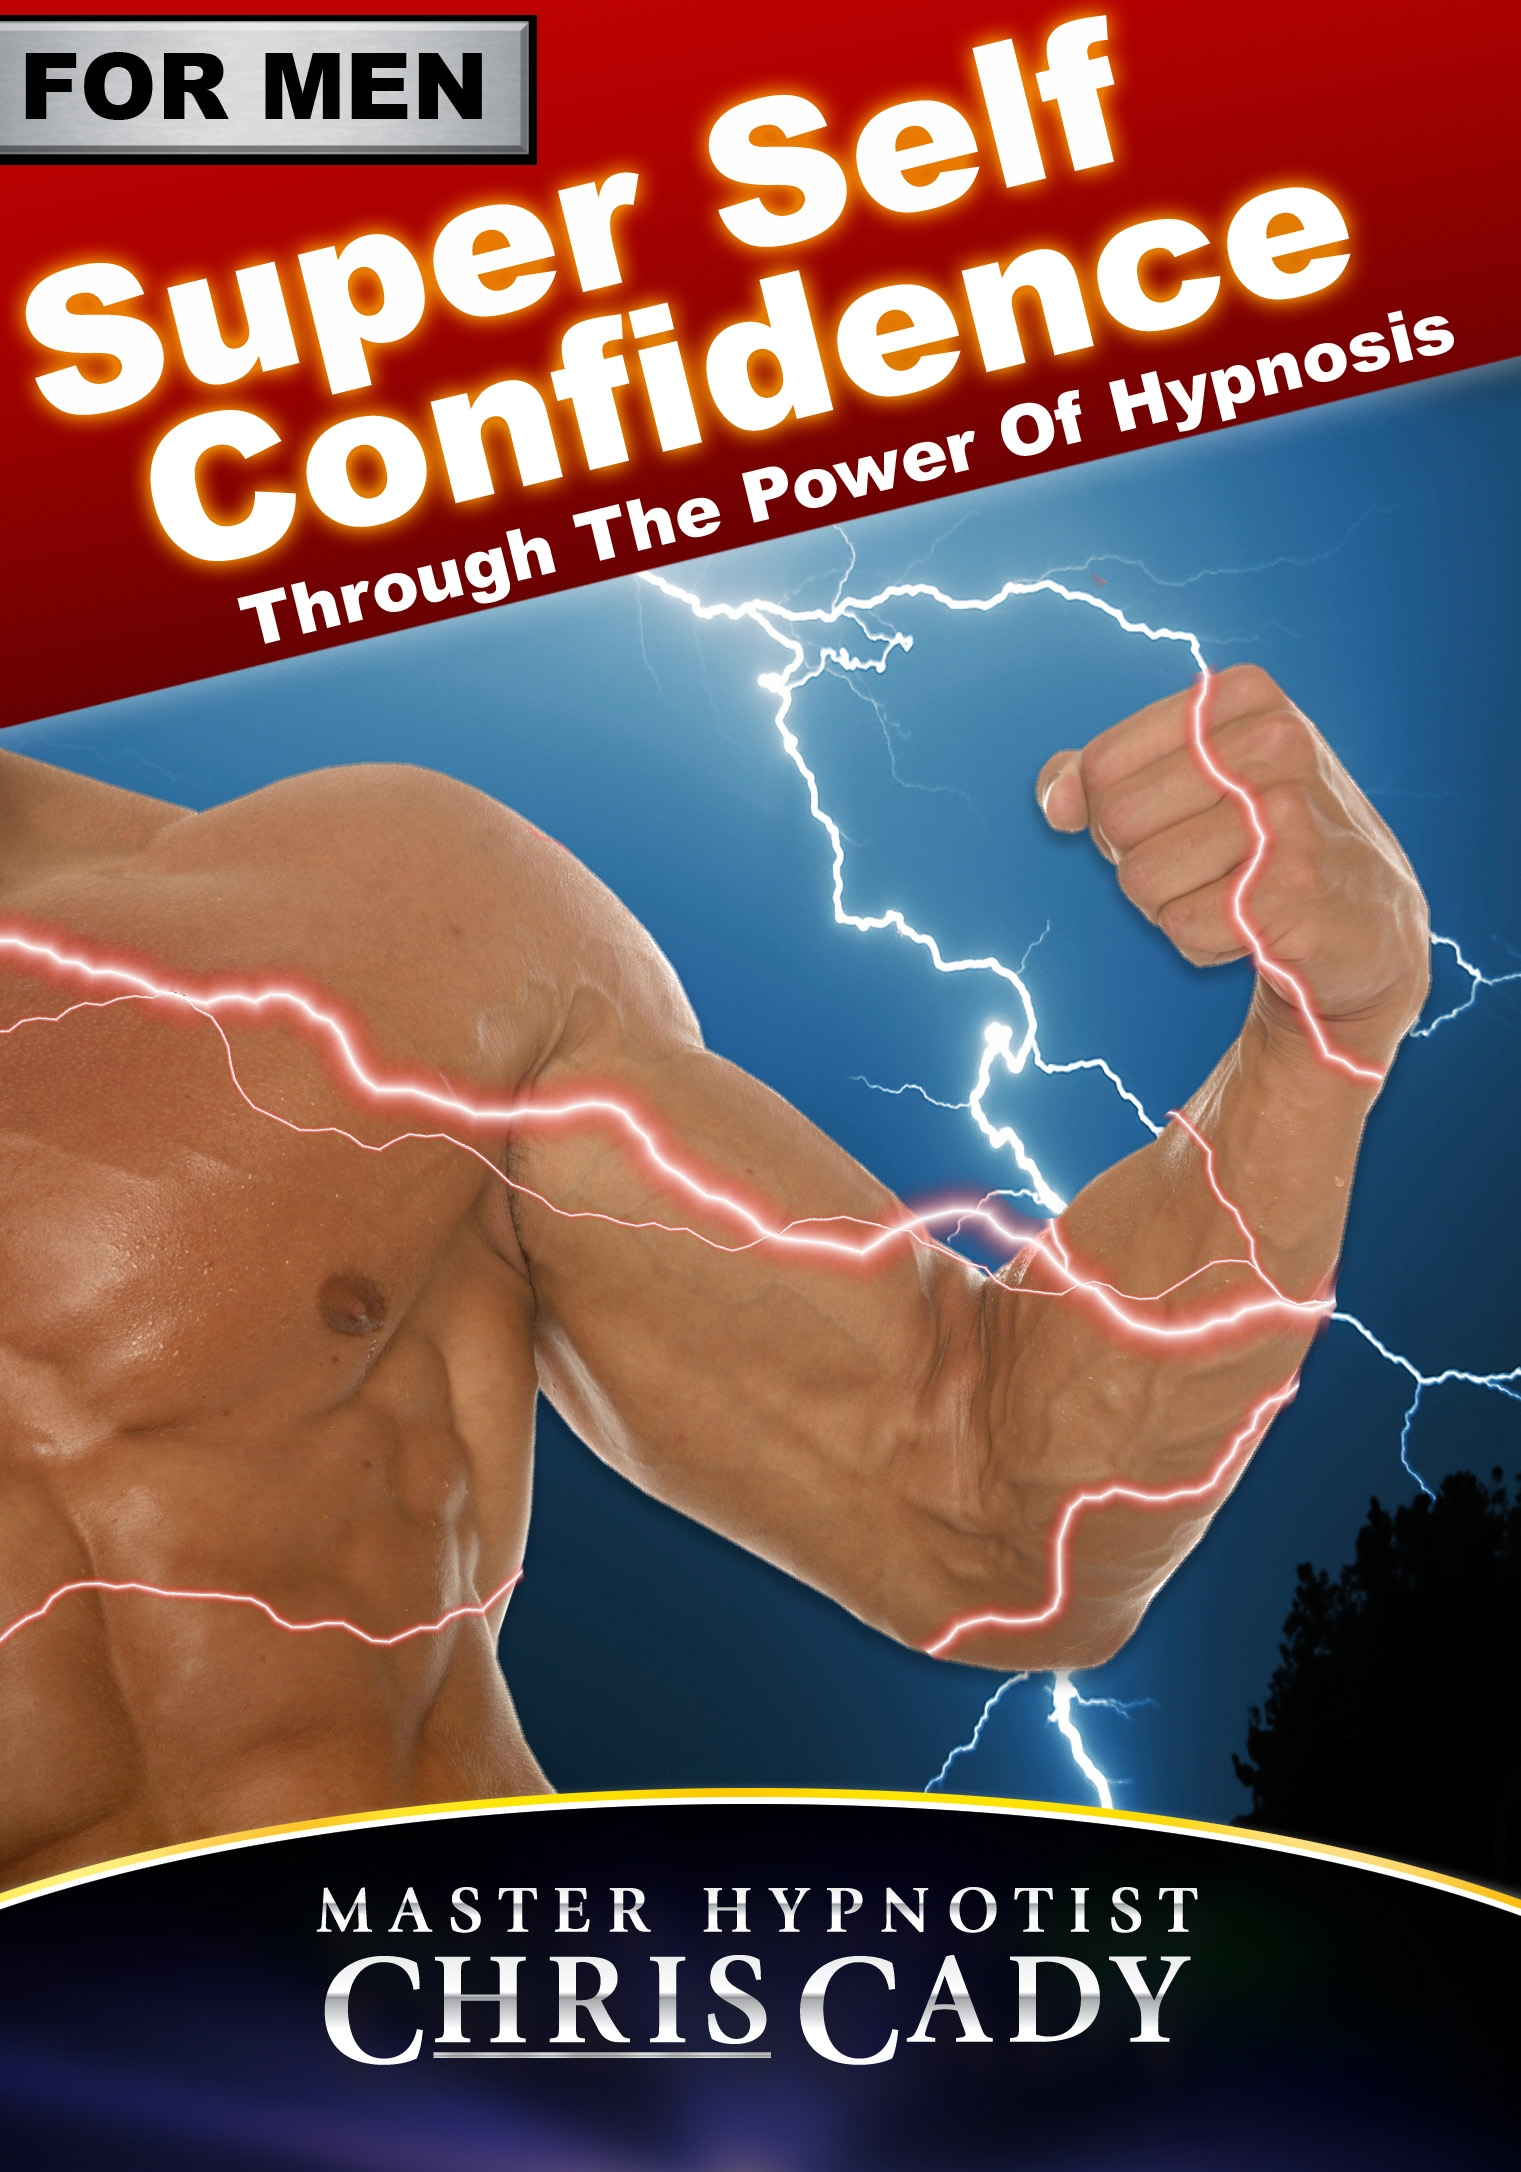 self confidence for men with hypnosis with hypnosis cd by hypnotist chris cady